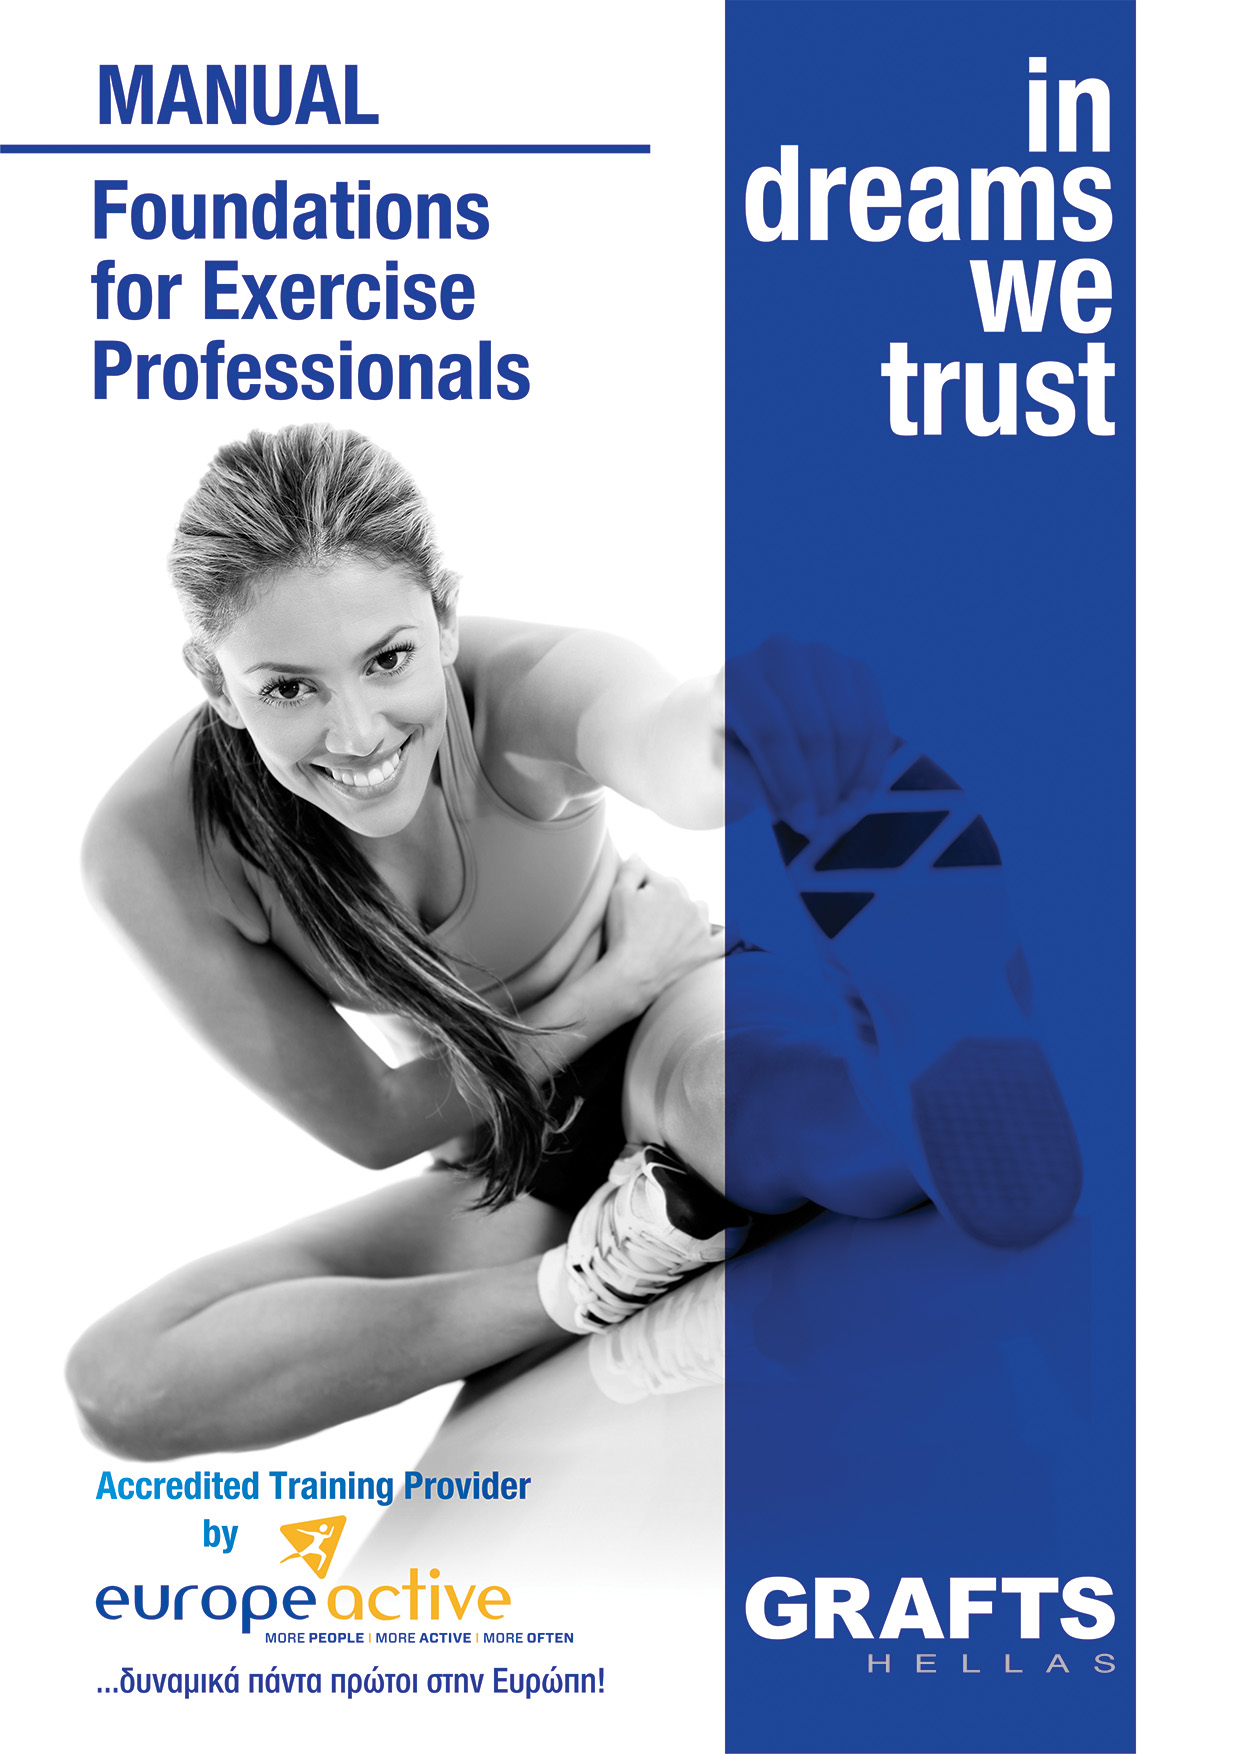 Grafts Hellas manual - Foundations for Exercise Professionals